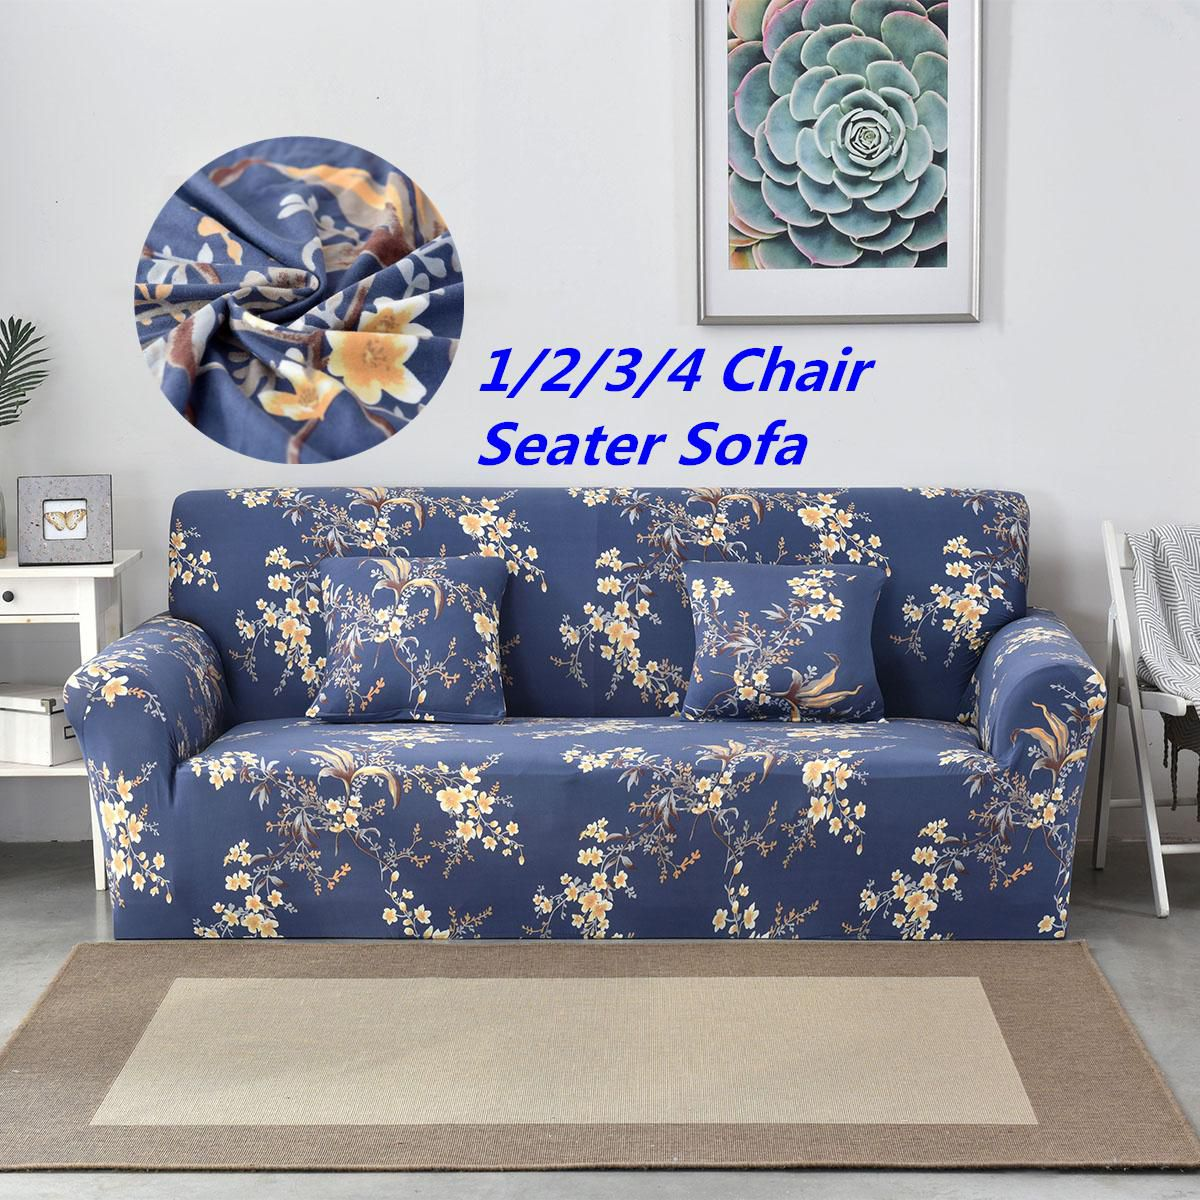 1 2 3 4 seater sofa cover chair couch stretch elastic protect rh snapdeal com